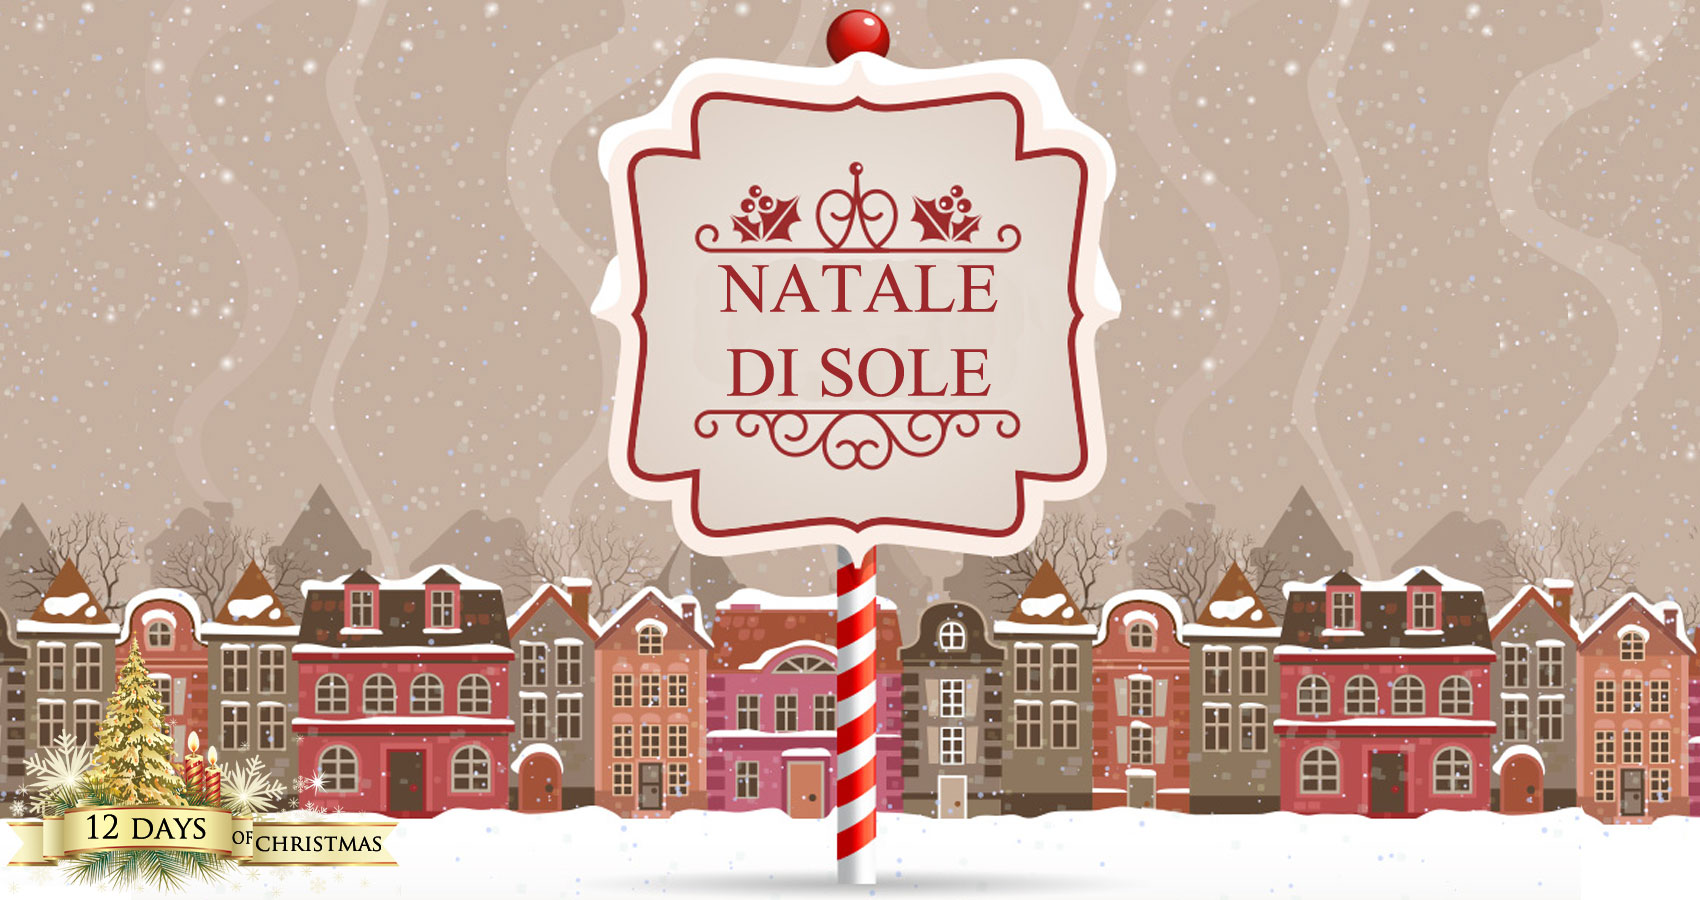 NATALE DI SOLE written by Maurizio Ricci at Spillwords.com